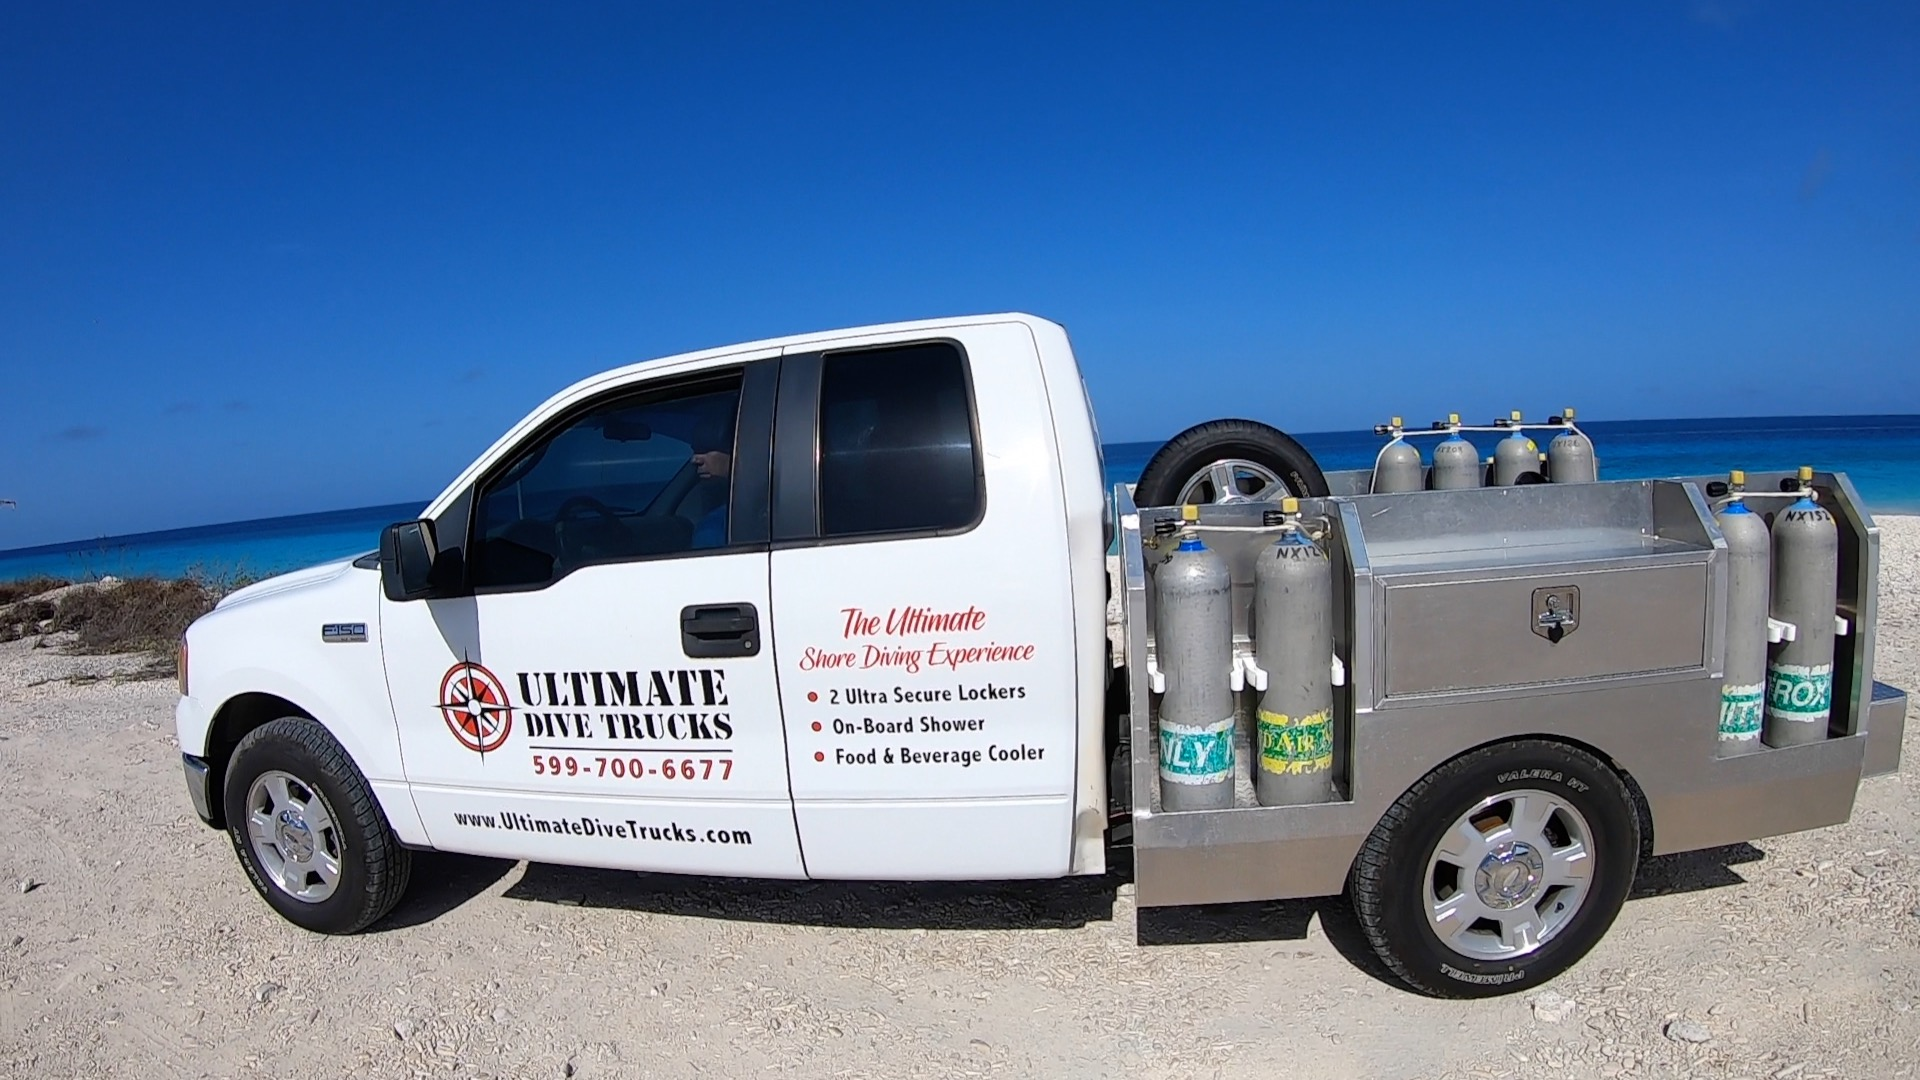 Ultimate dive truck